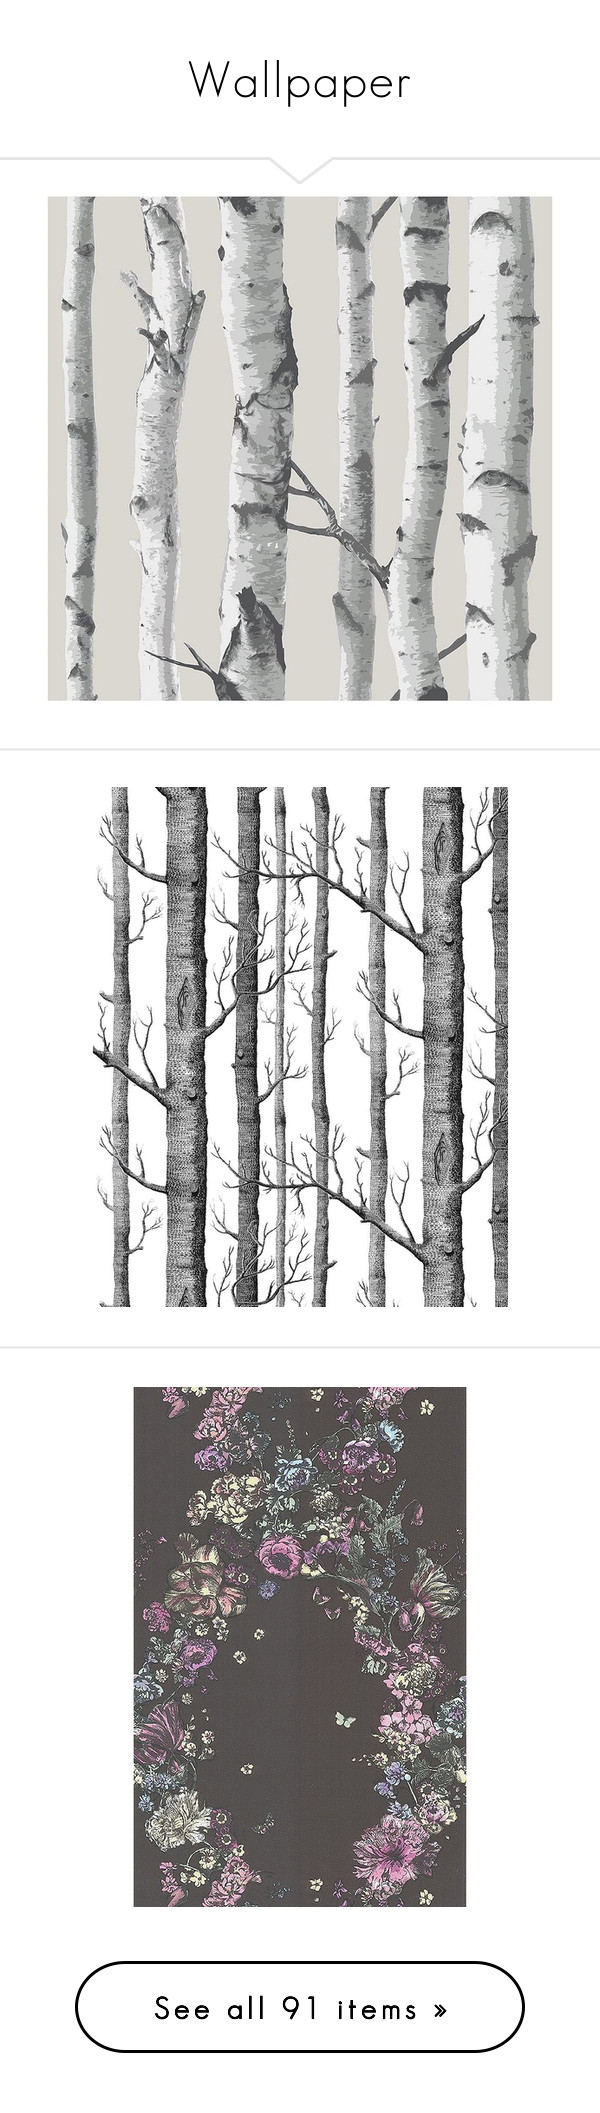 Wallpaper By Suelb Liked On Polyvore Featuring Home Home